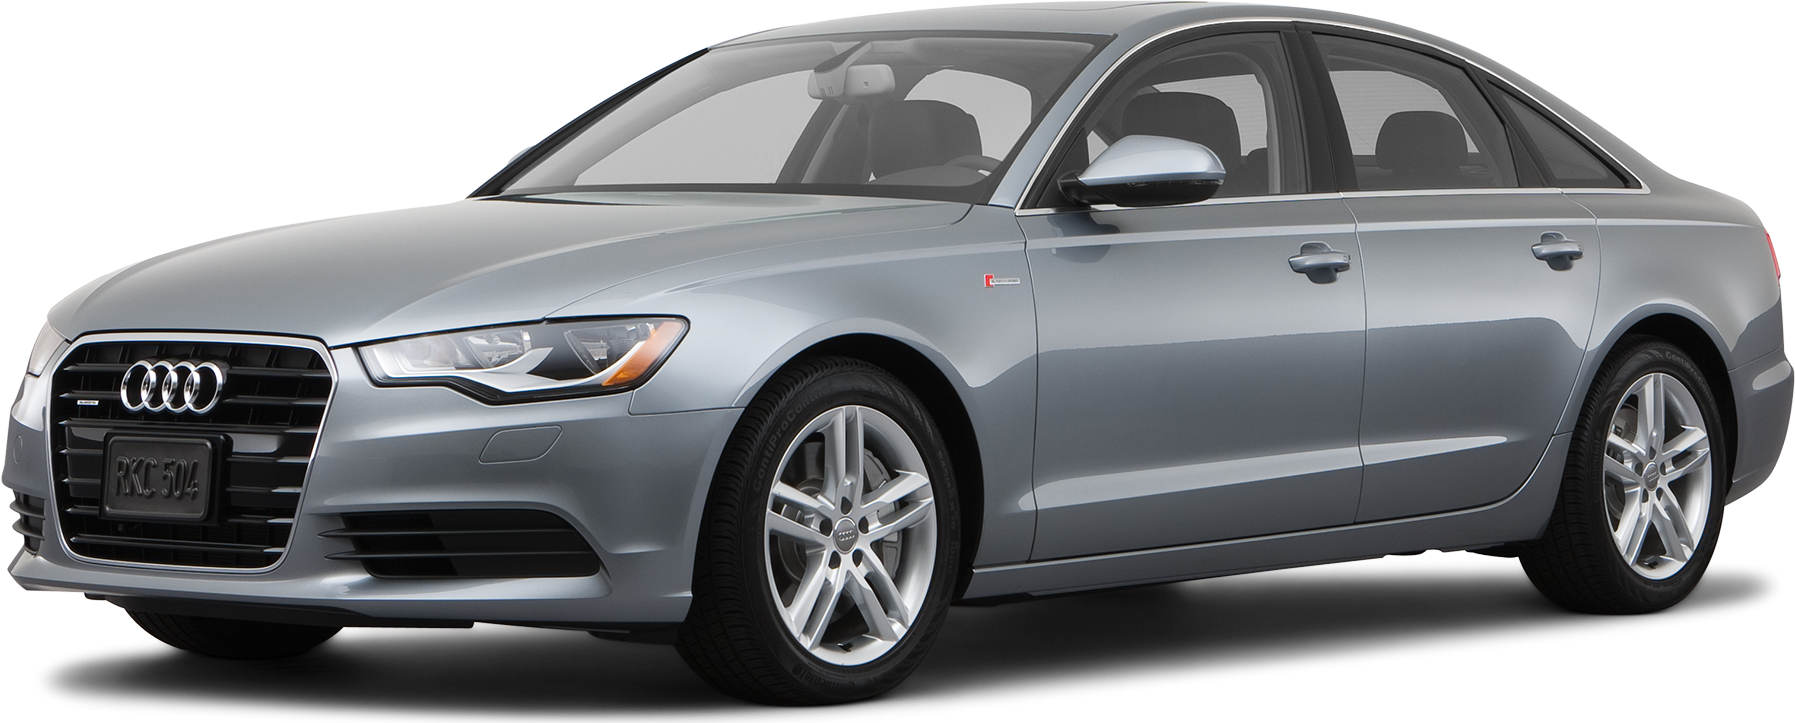 2012 Audi A7 | Pricing, Ratings, Expert Review | Kelley Blue Book